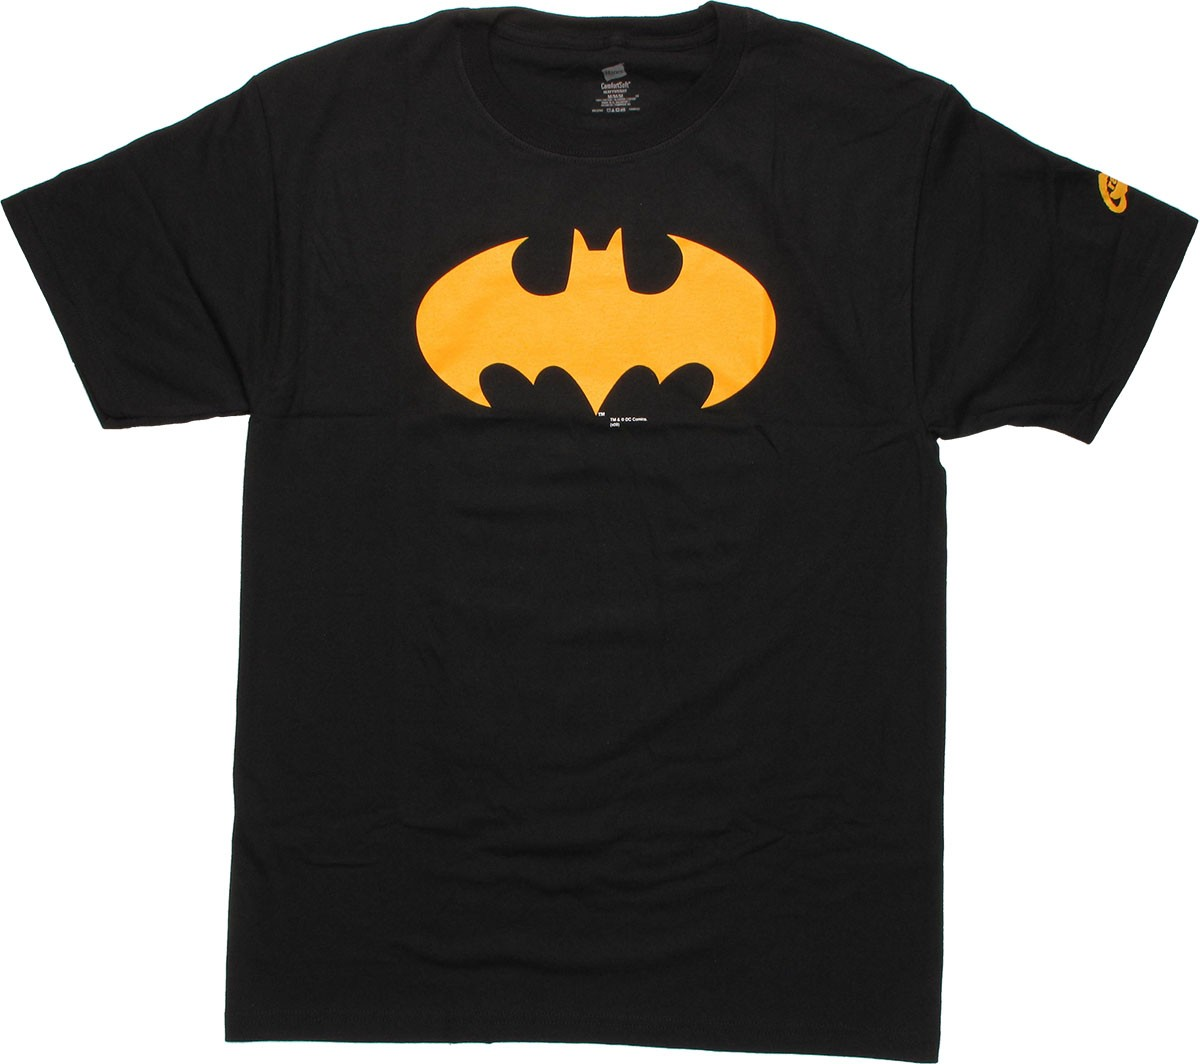 batman gold symbol t shirt. Black Bedroom Furniture Sets. Home Design Ideas